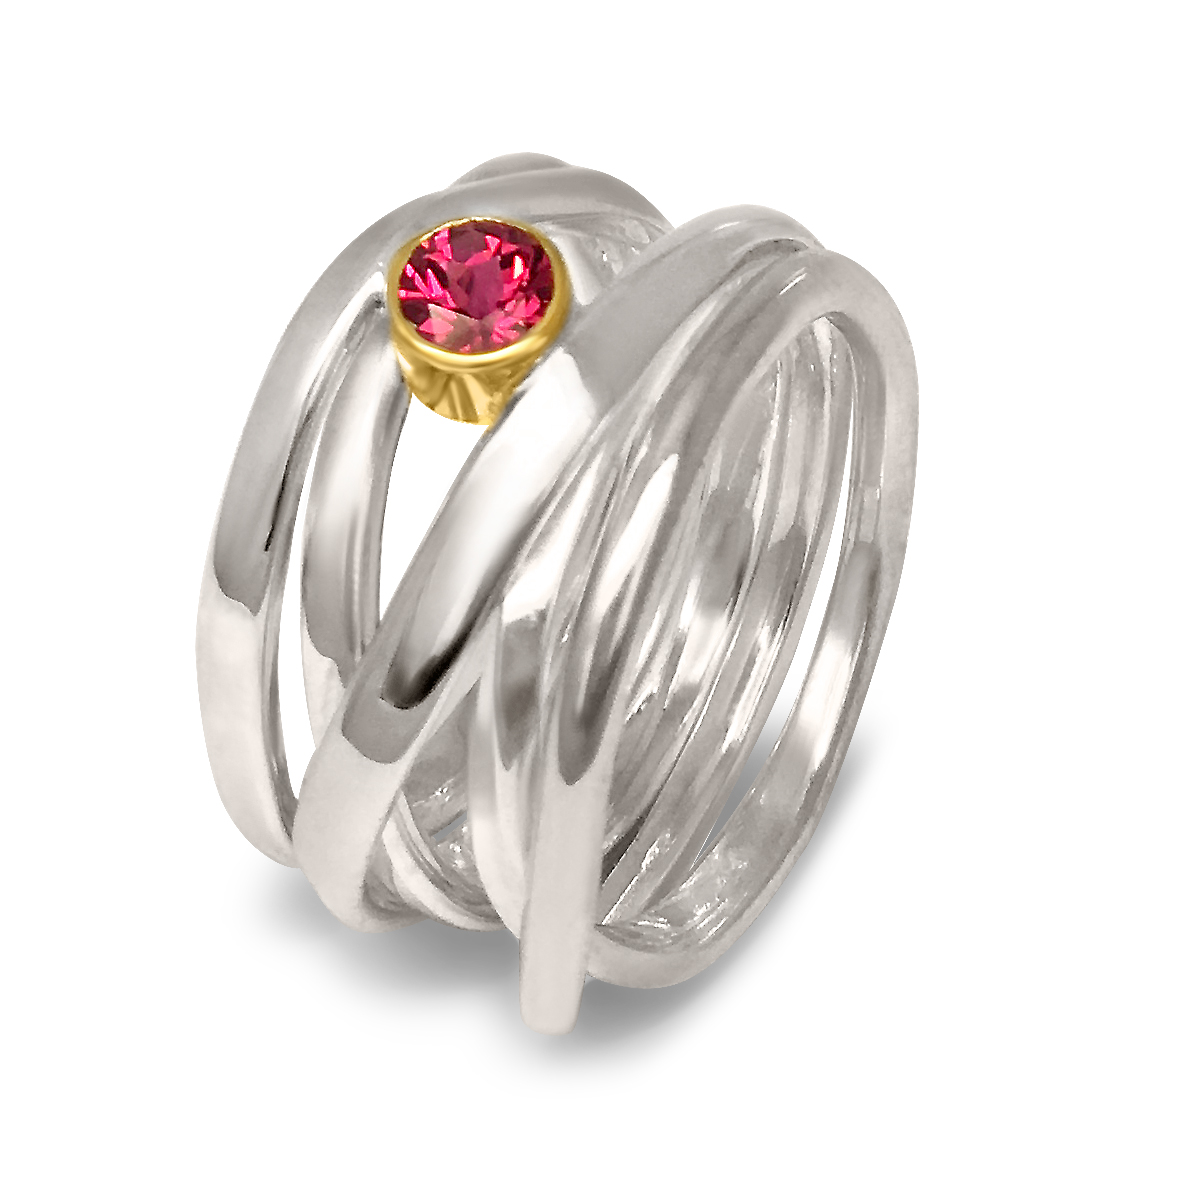 One-of-a-Kind #231 || Sterling Onefooter Ring with Red Spinel in 18k yellow gold bezel setting, Size 7